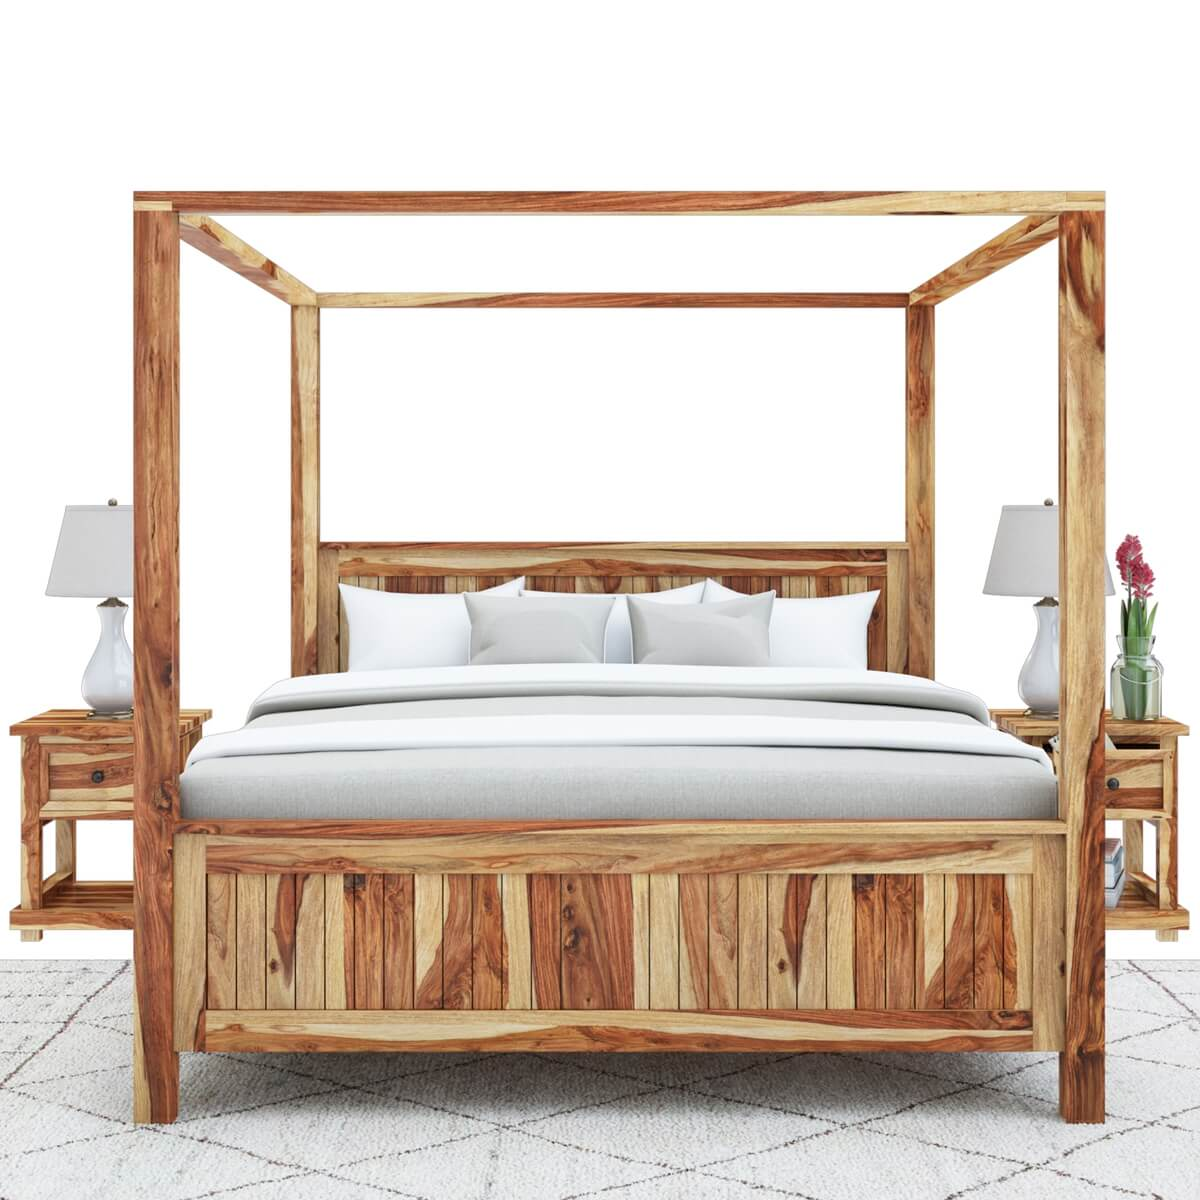 Larvik Rustic Solid Wood Queen Size Platform Canopy Bed